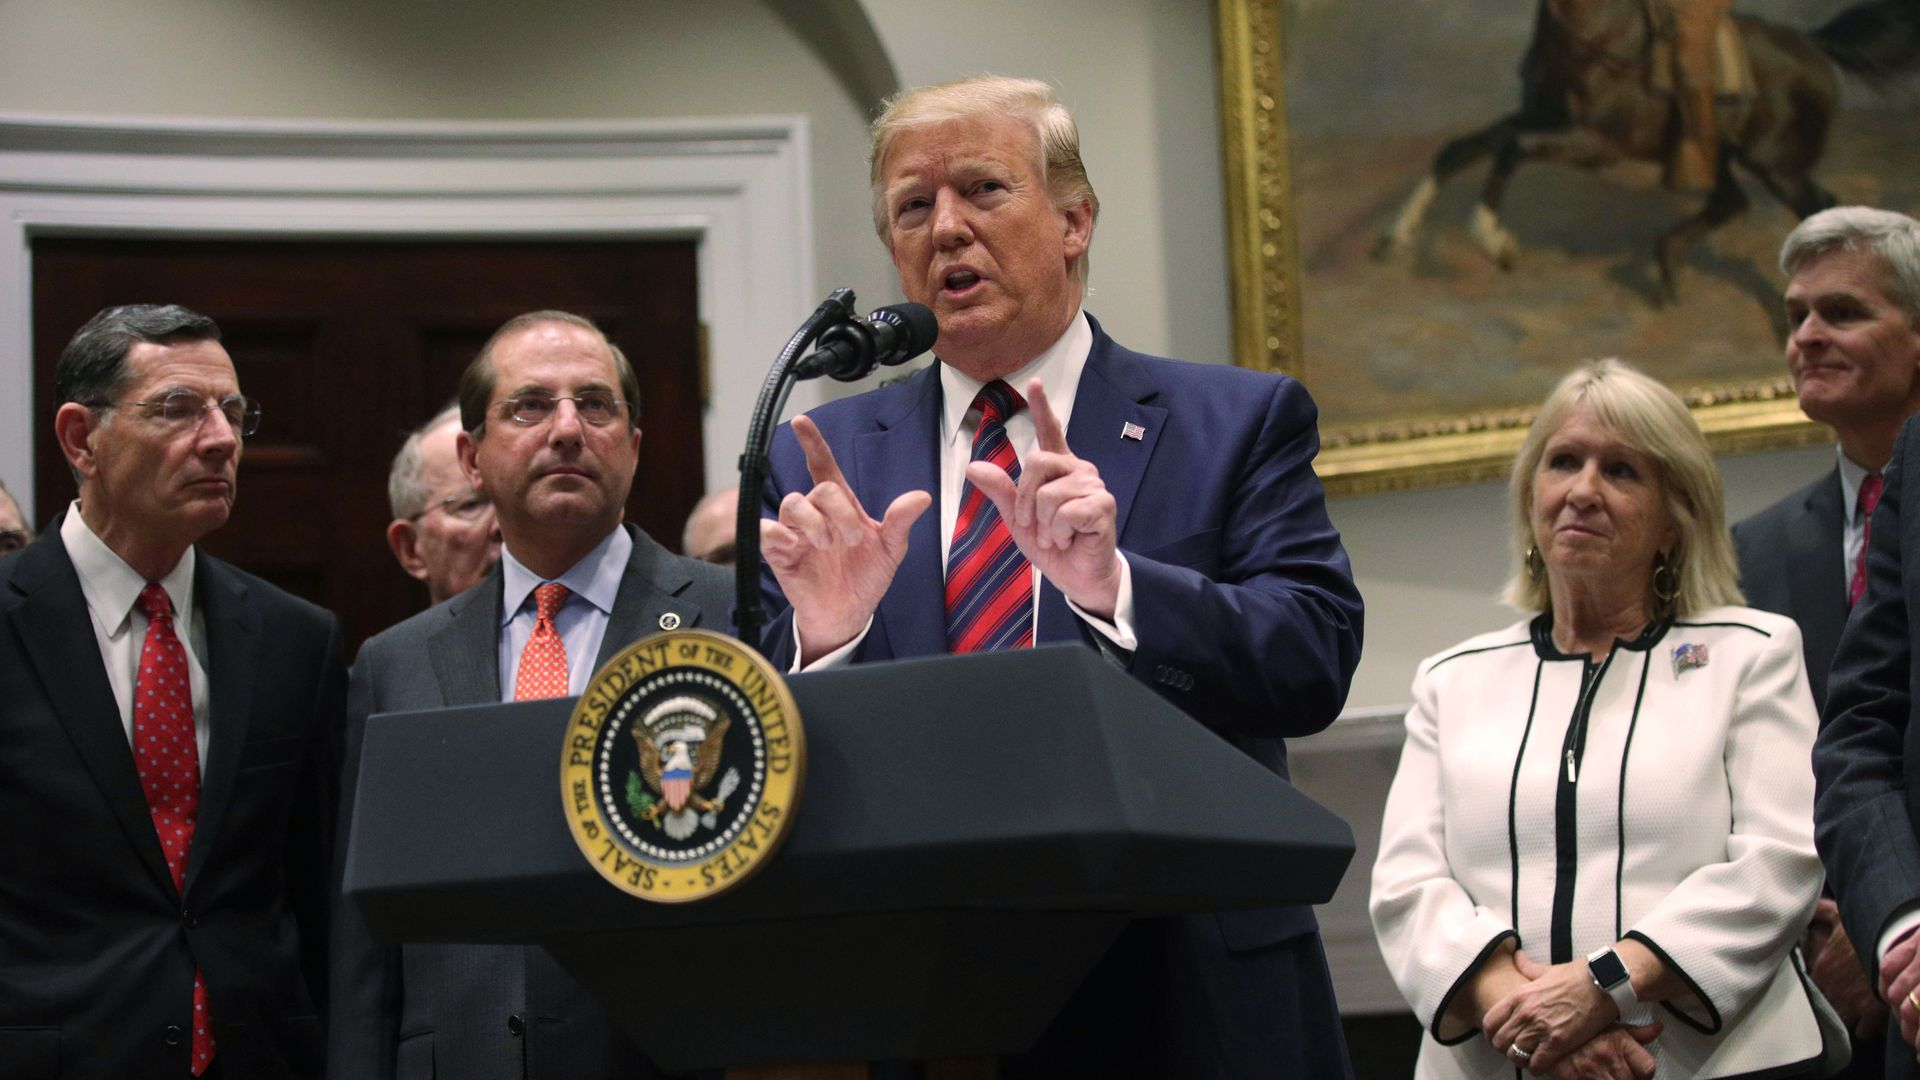 Trump with HHS secretary alex azar